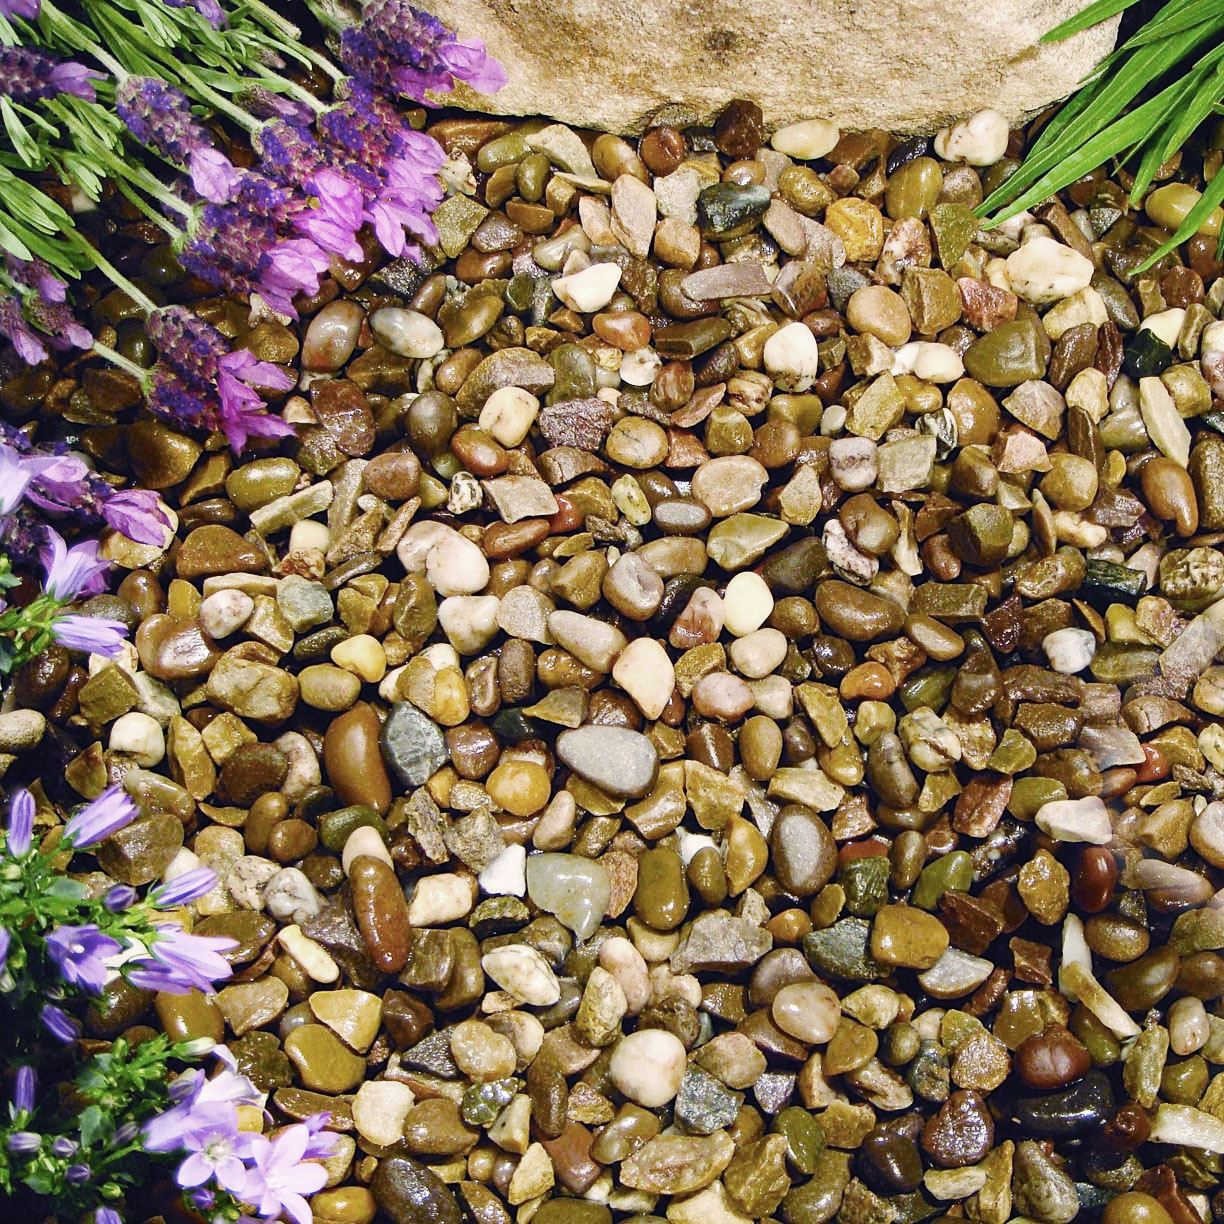 Best Image Of Garden Woodimages Co: 1 To 30kg Gravel Chippings Deter Weed Garden Path Patio